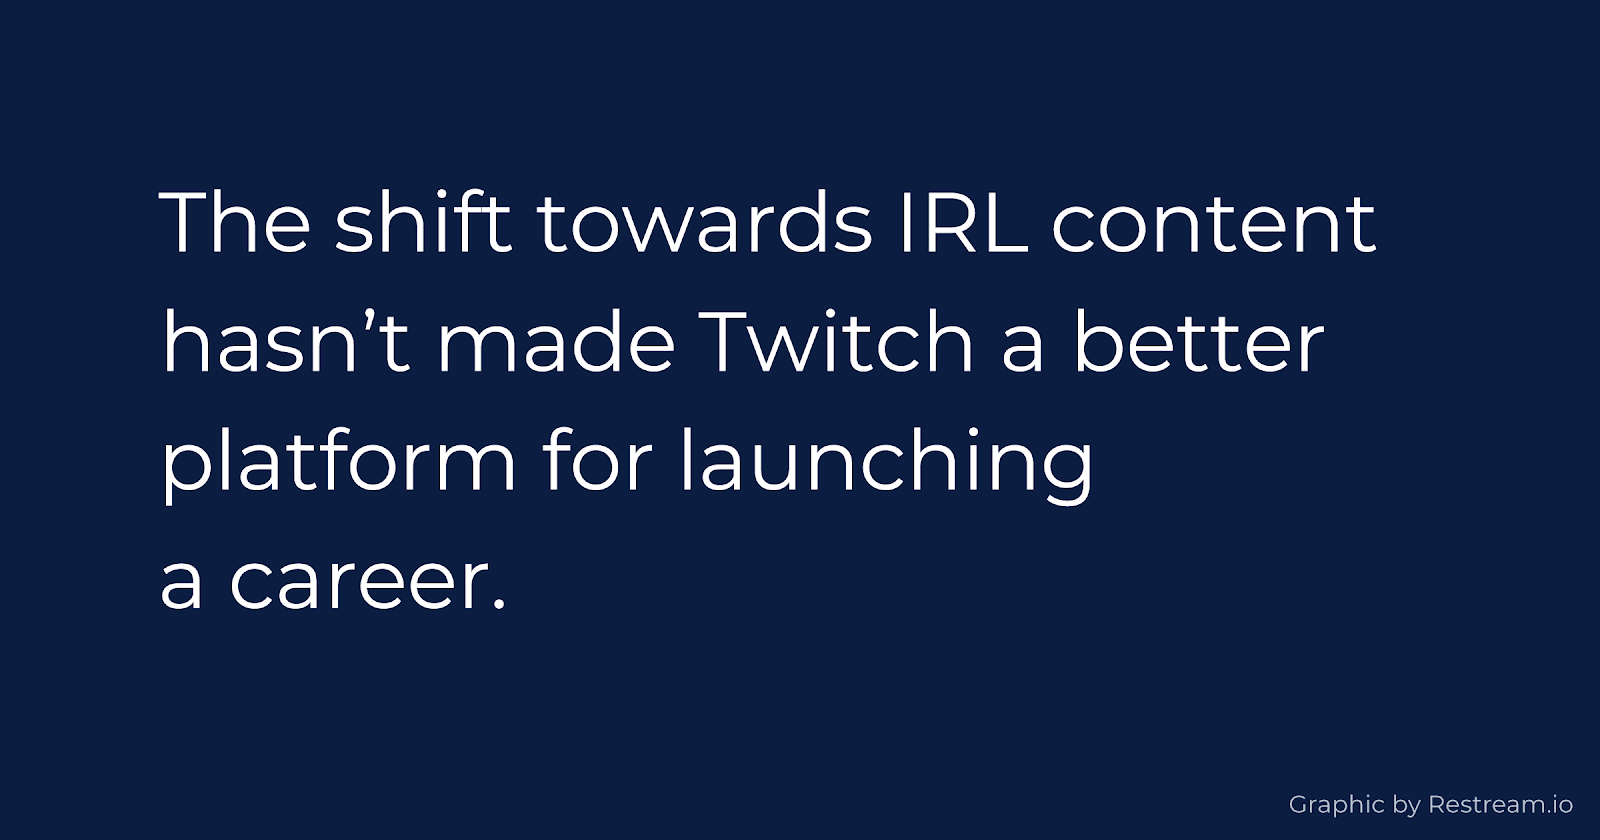 The shift towards IRL content hasn't made Twitch a better platform for launching a career